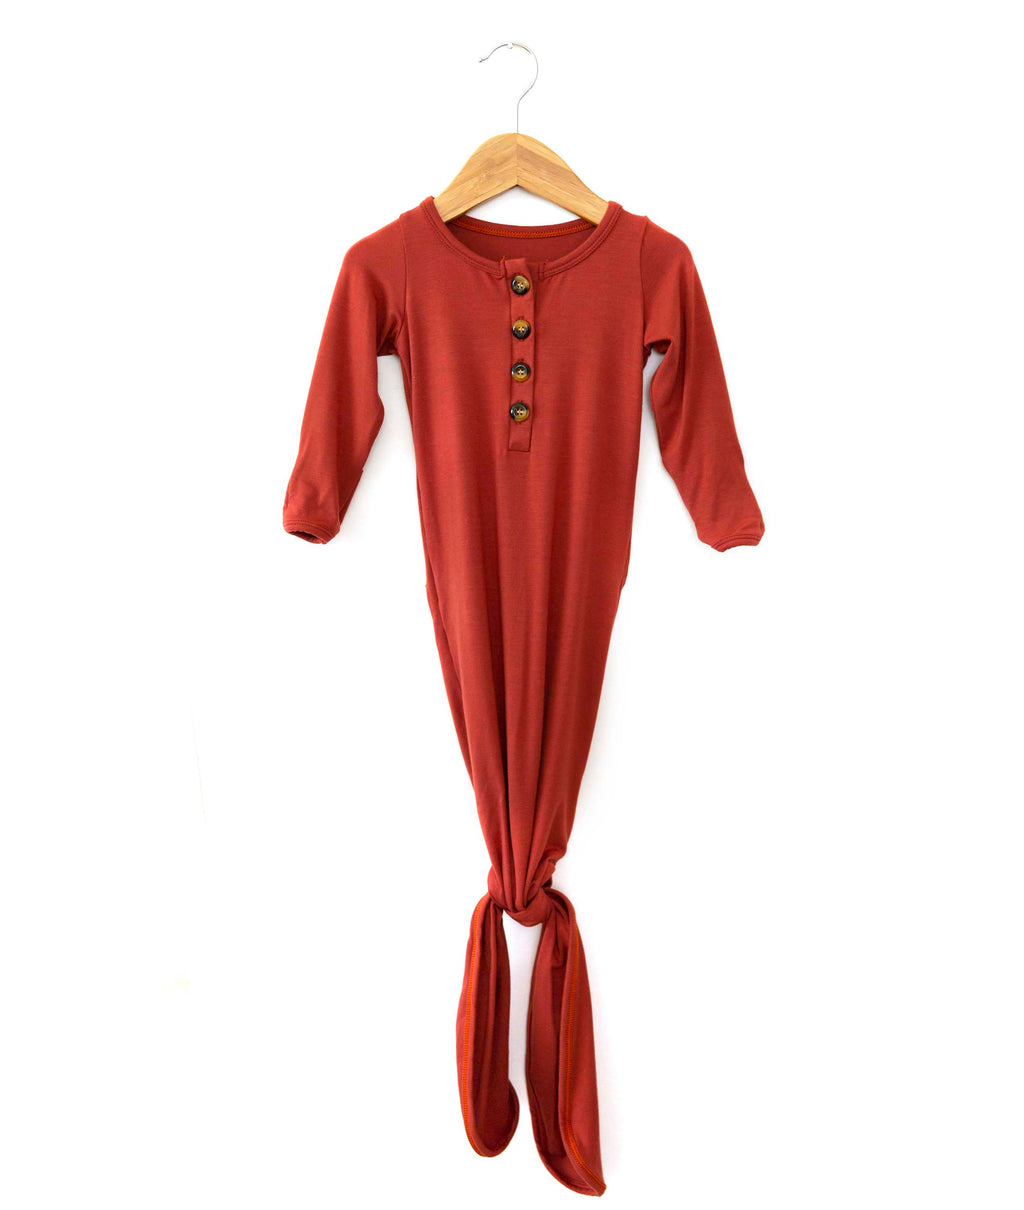 Buttery Soft Knotted Gown in Copper Red - Reverie Threads